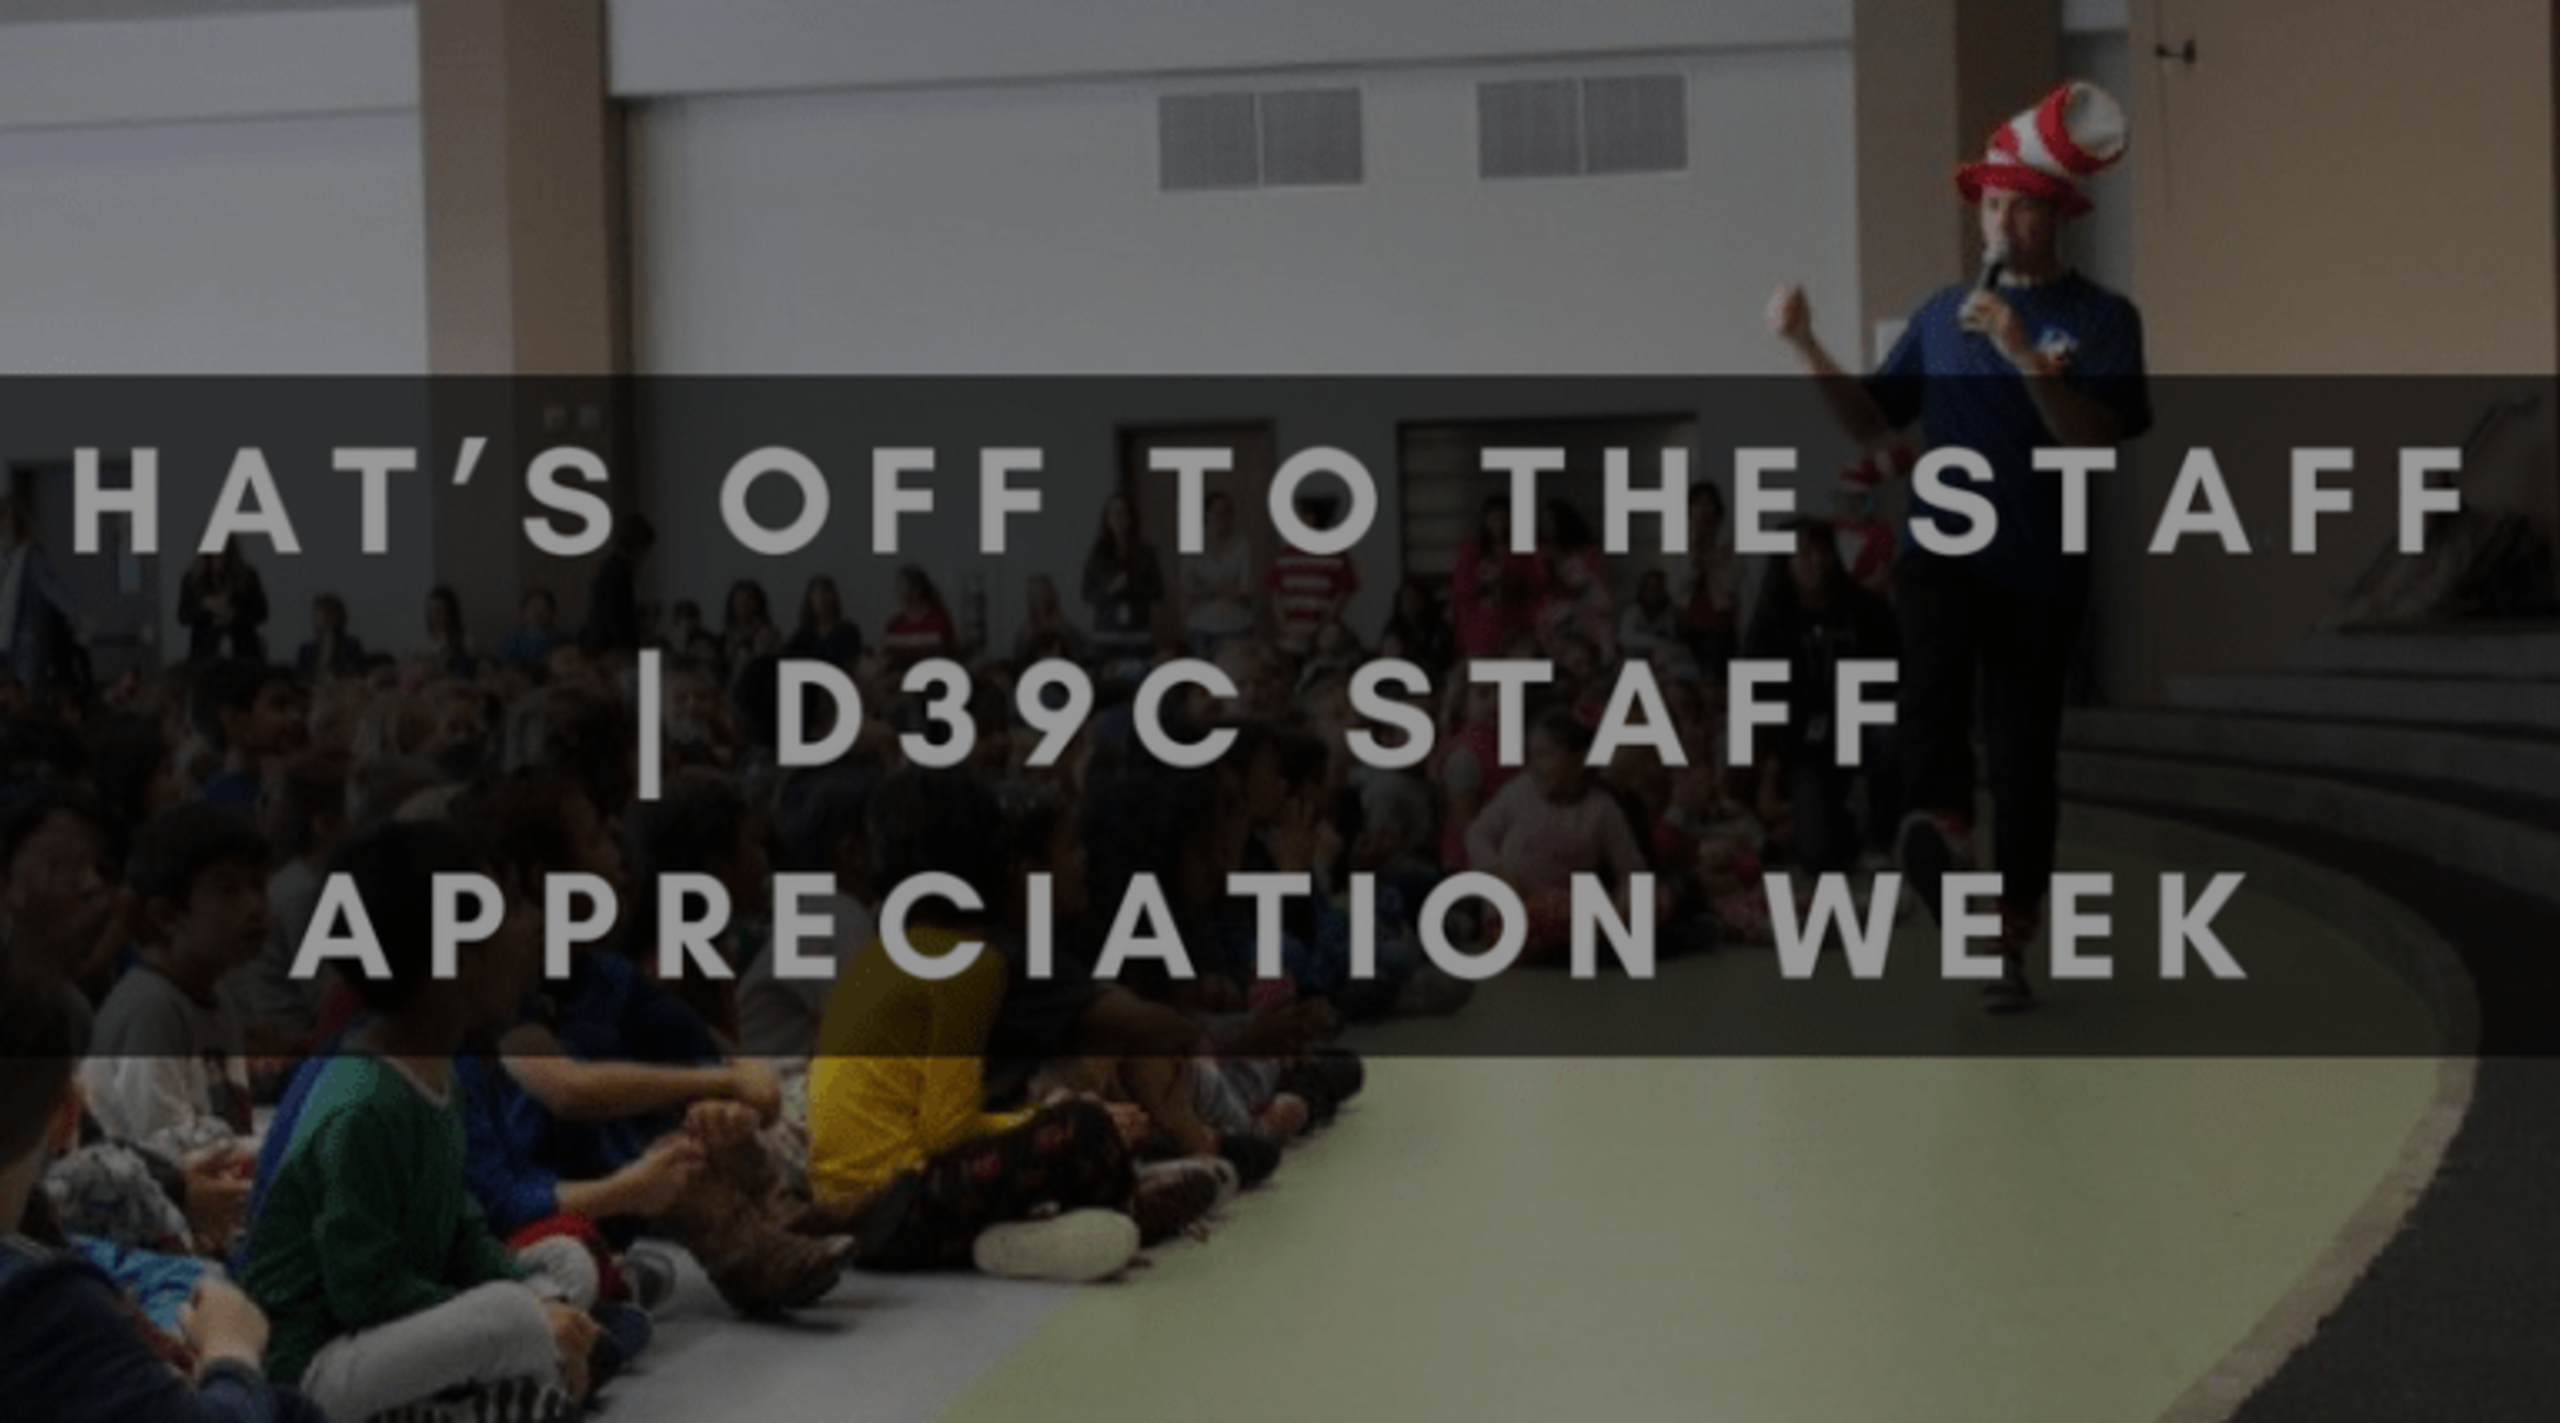 HAT'S OFF TO THE STAFF | D39C STAFF APPRECIATION WEEK